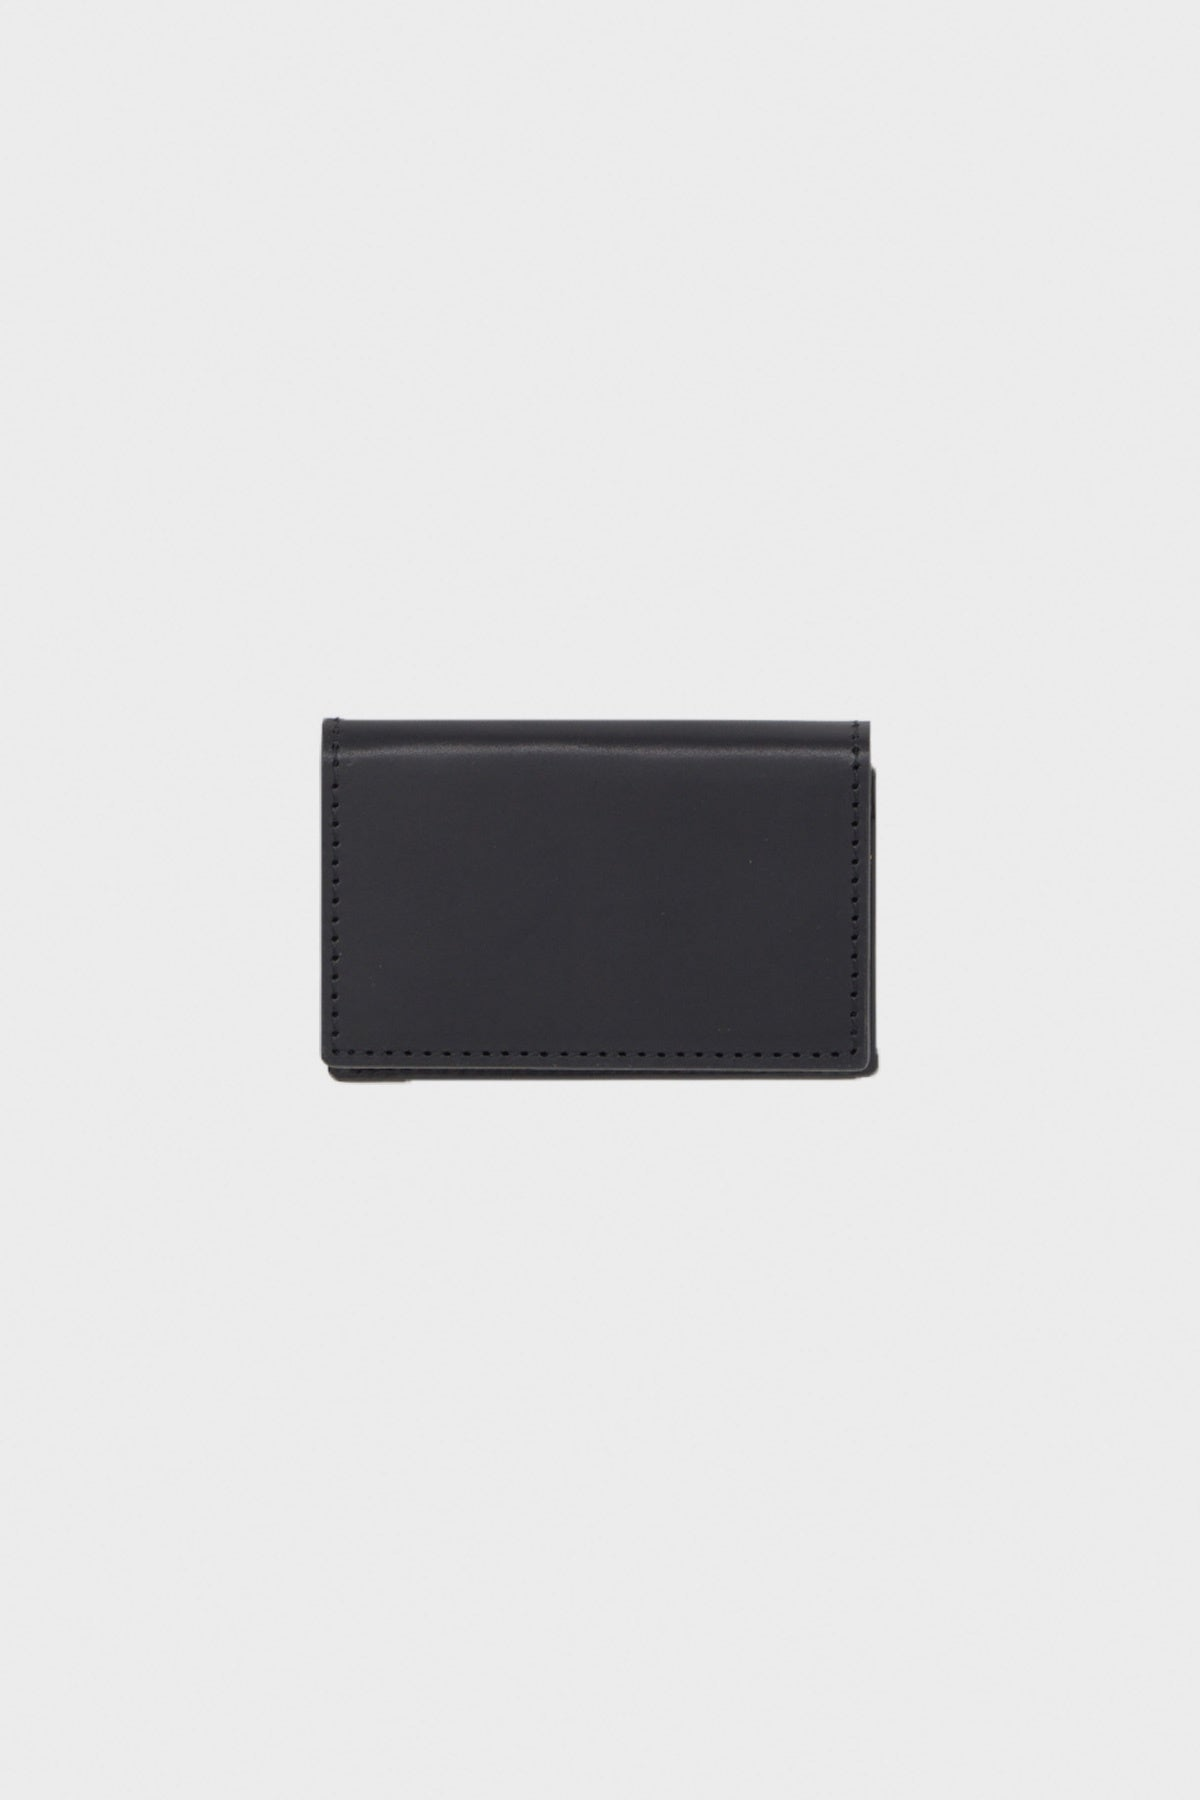 Hender Scheme - Folded Card Case - Black - Canoe Club